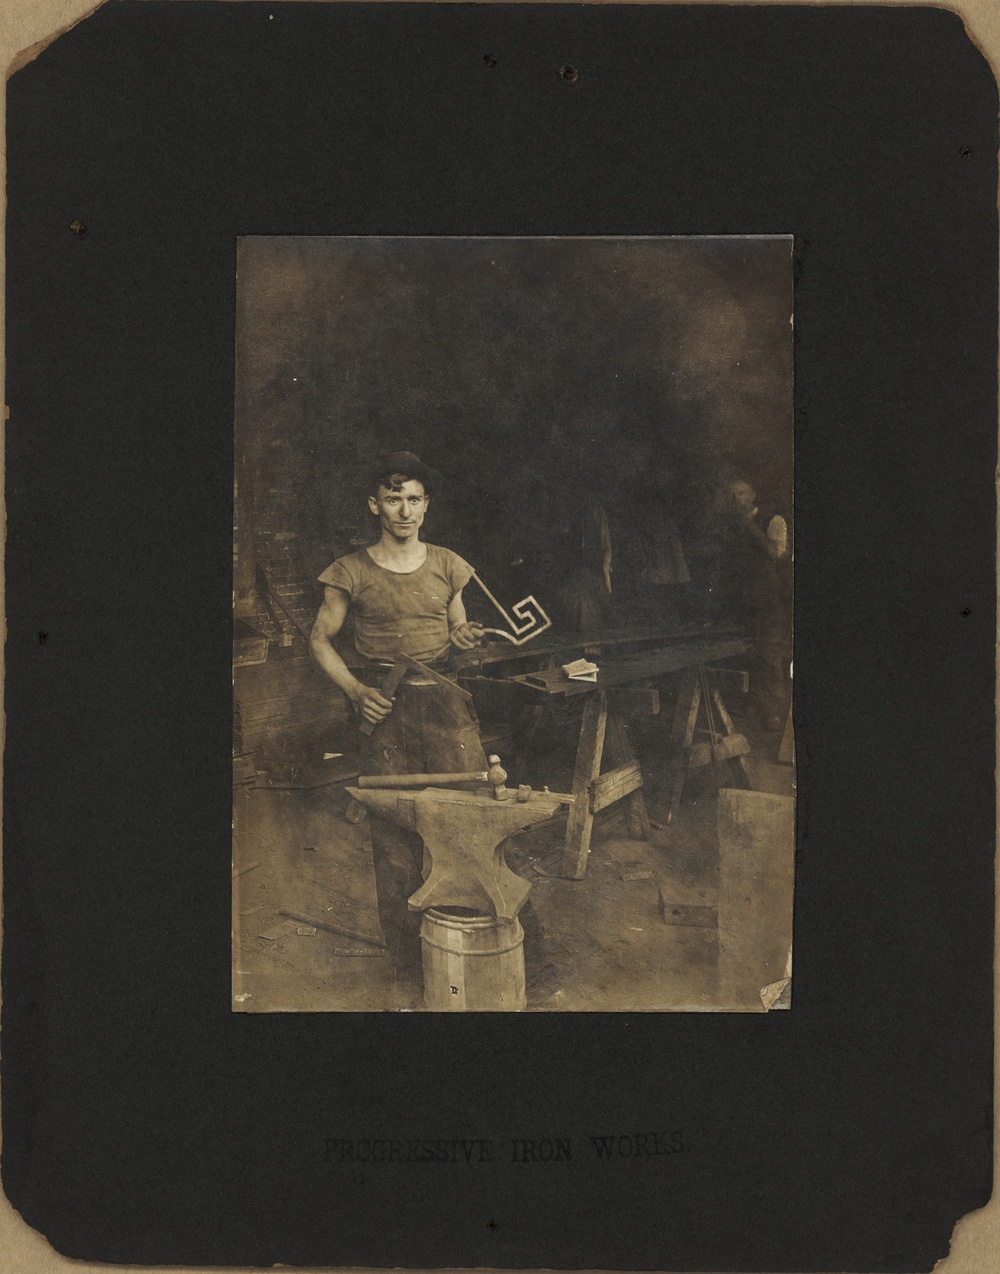 1910s New York Joseph Acquiste, blacksmith at Progressive Iron Works.